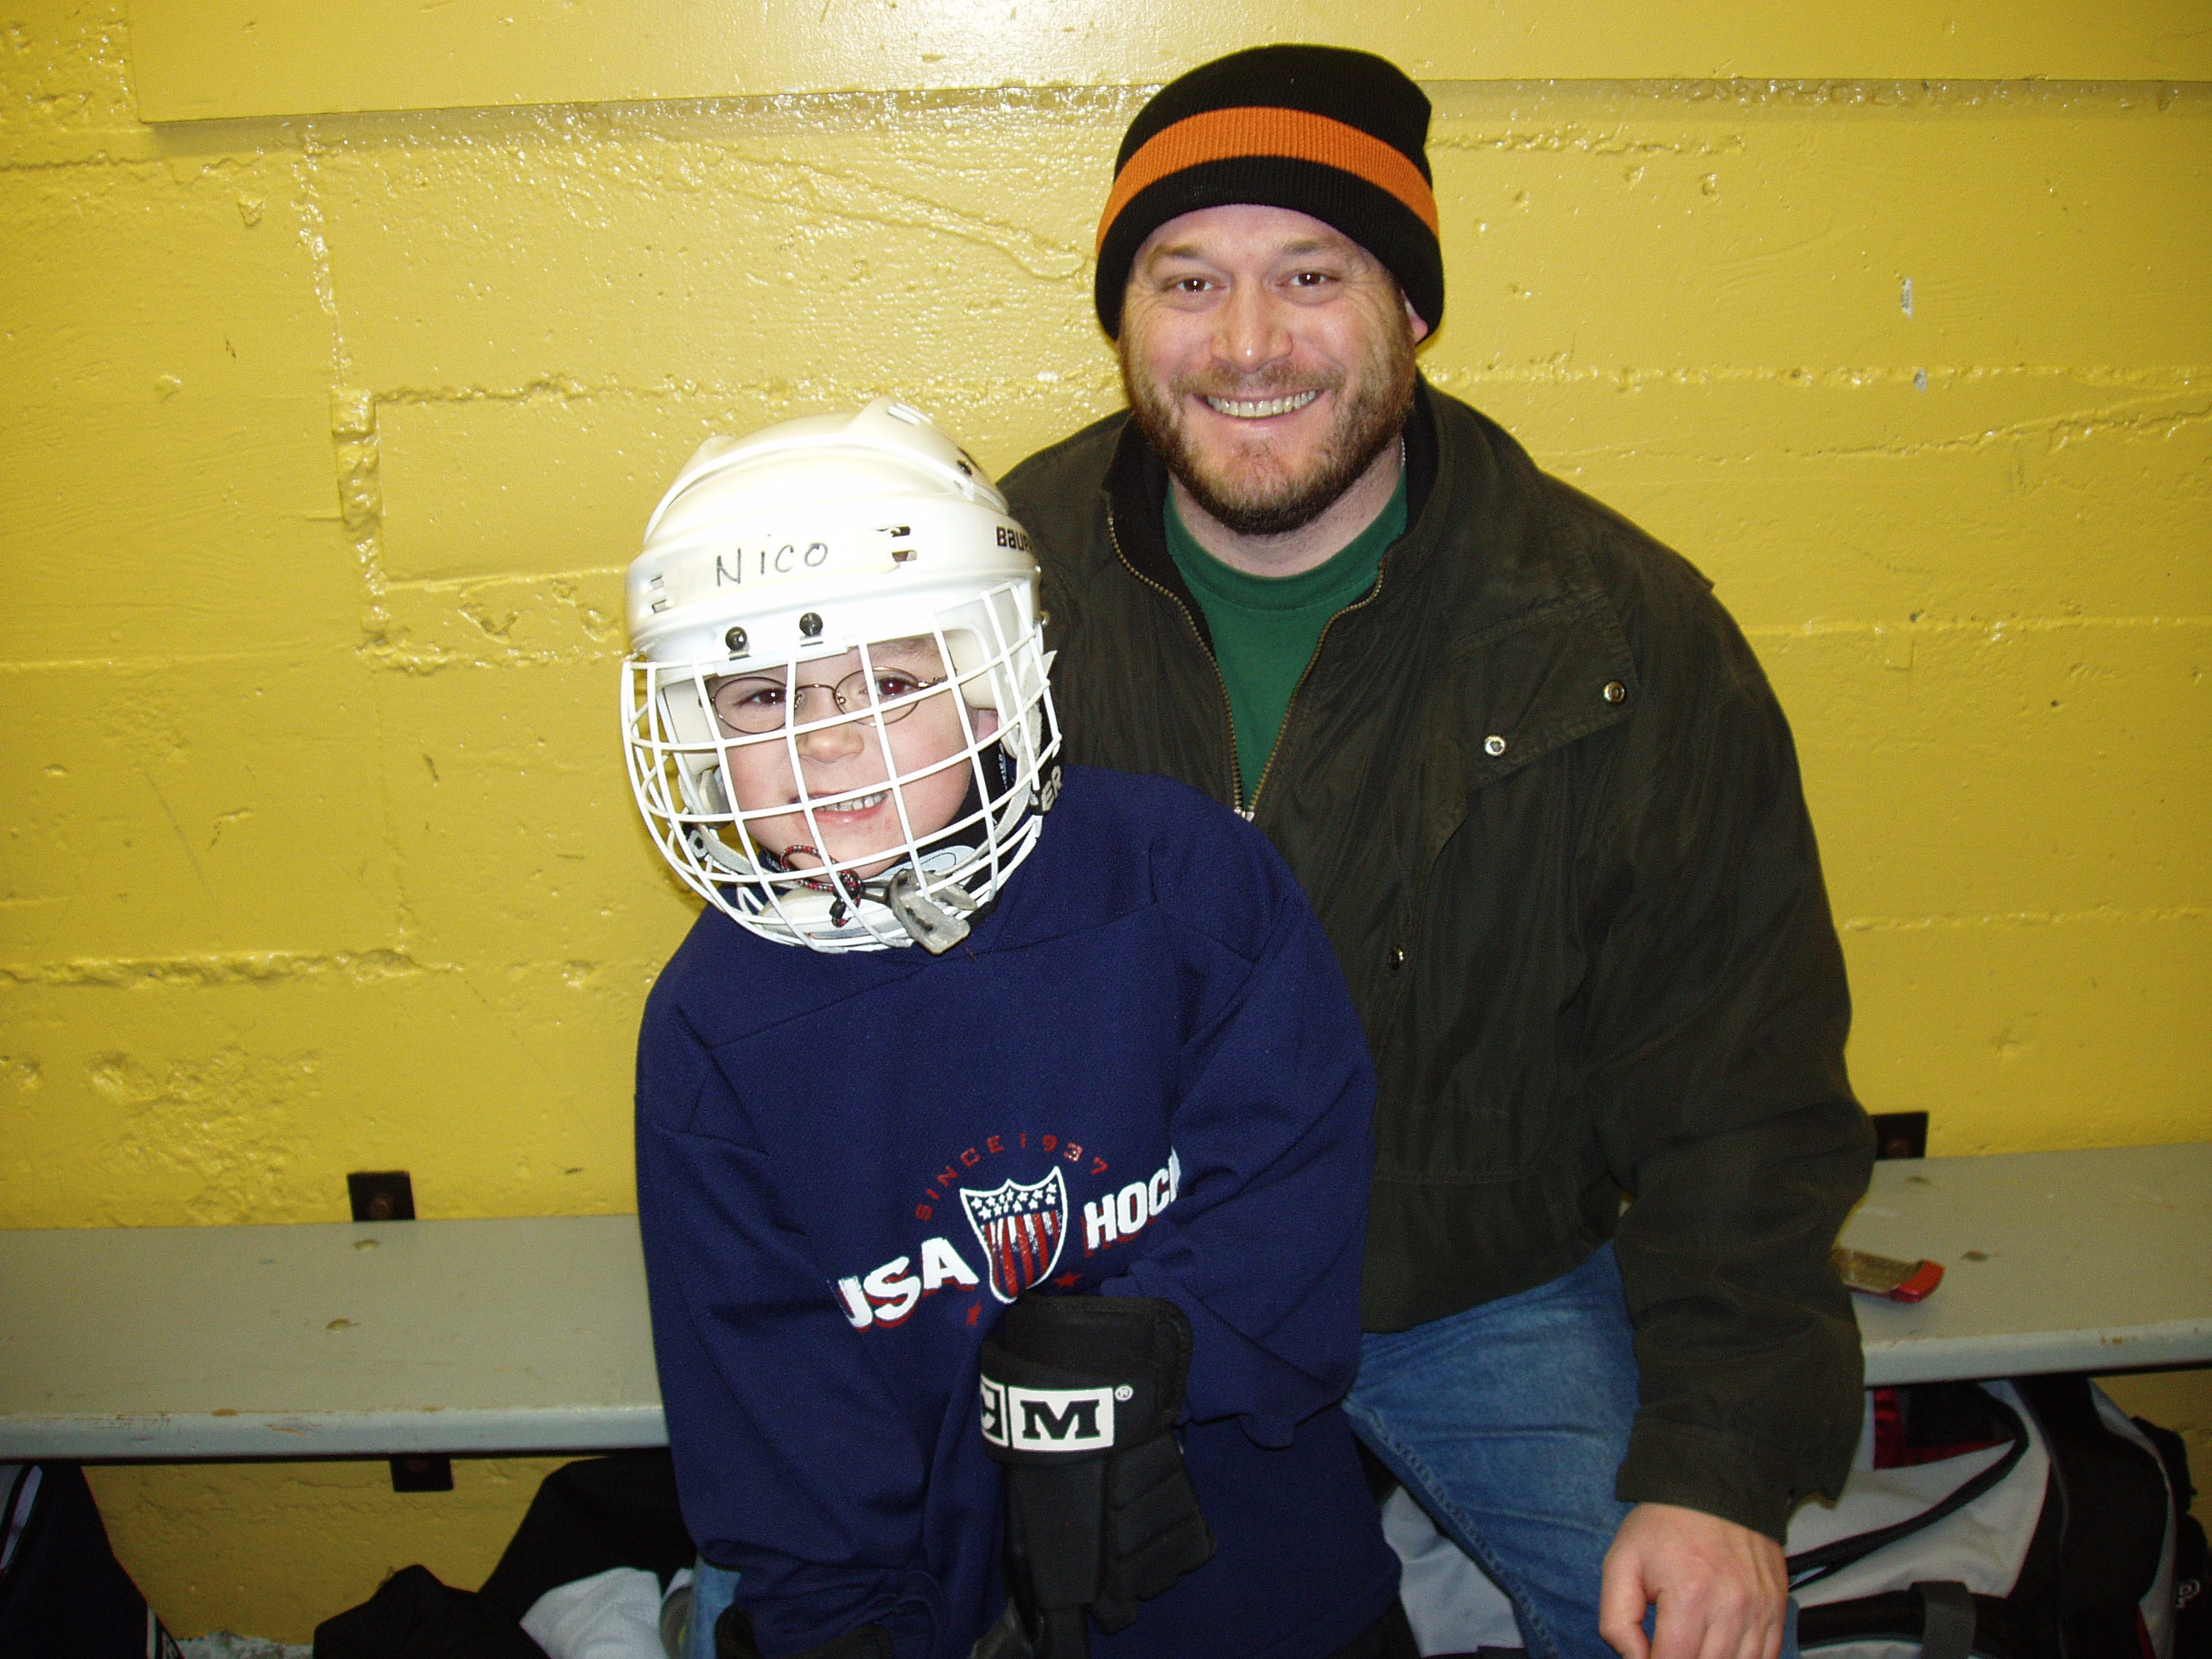 Me and My Youngest Son in Canada (his team went 3-0!)